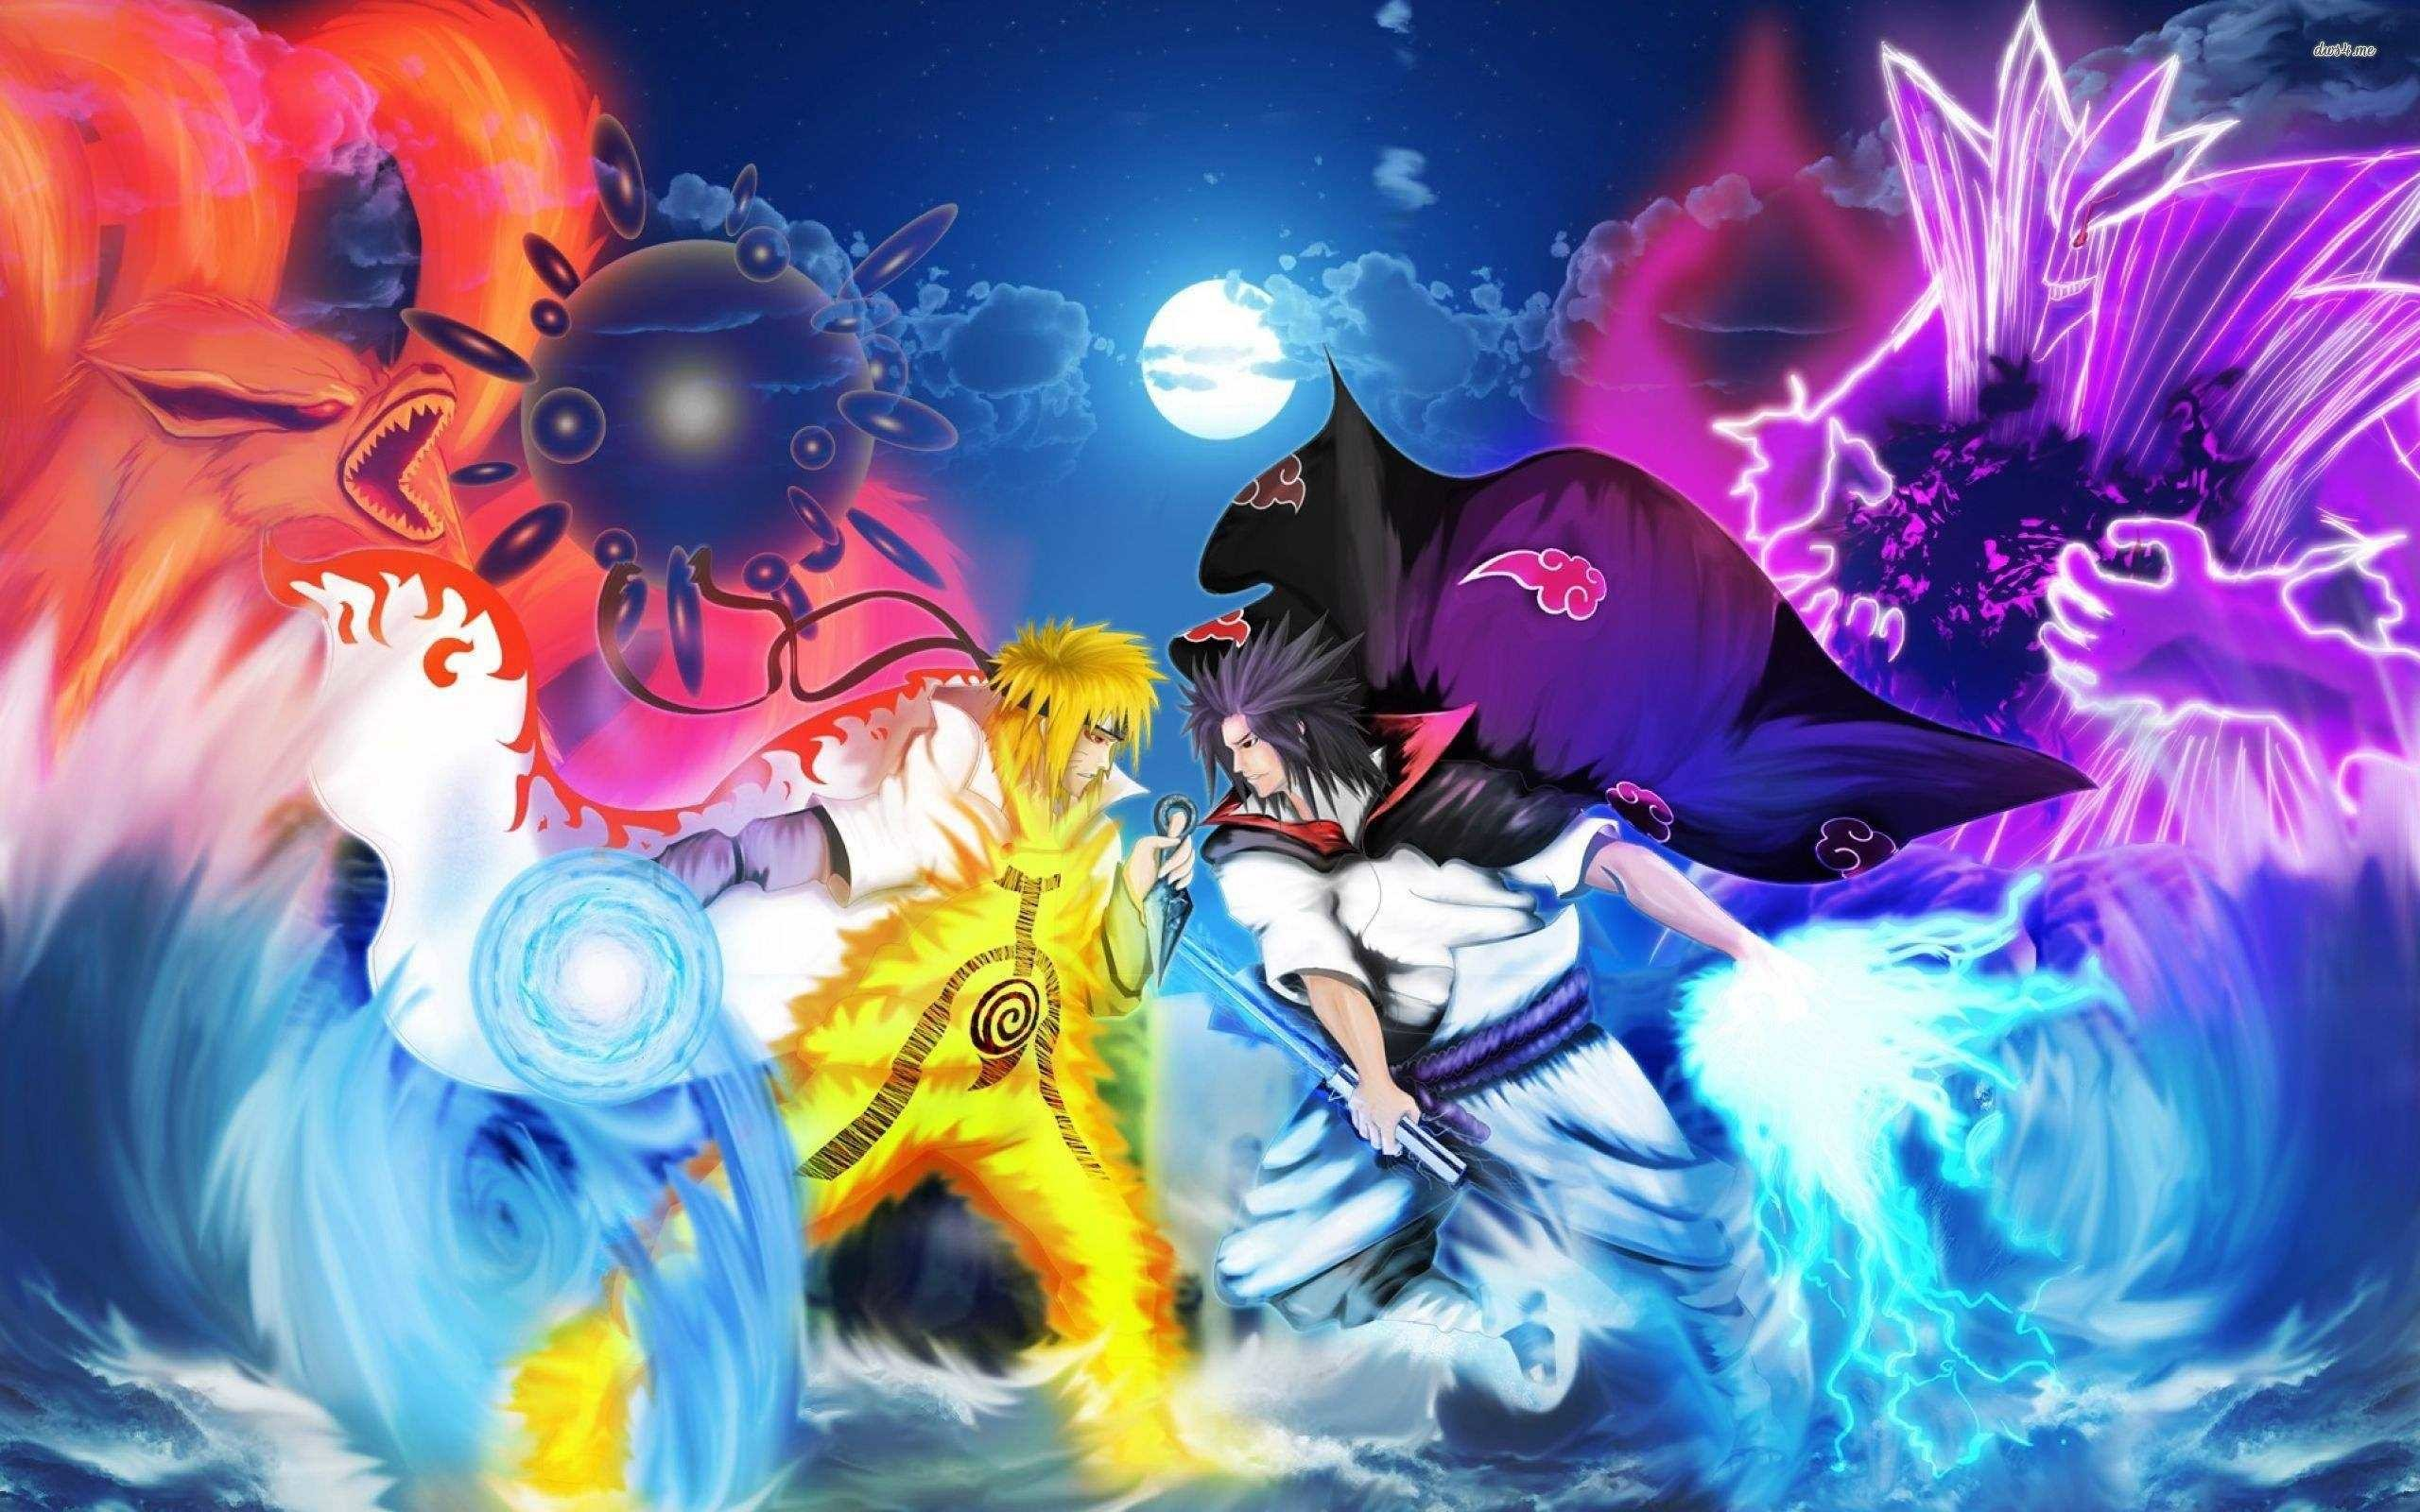 Res: 2560x1600, Cool Naruto Hd Images Desktop Best Wallpaper View For Smartphone